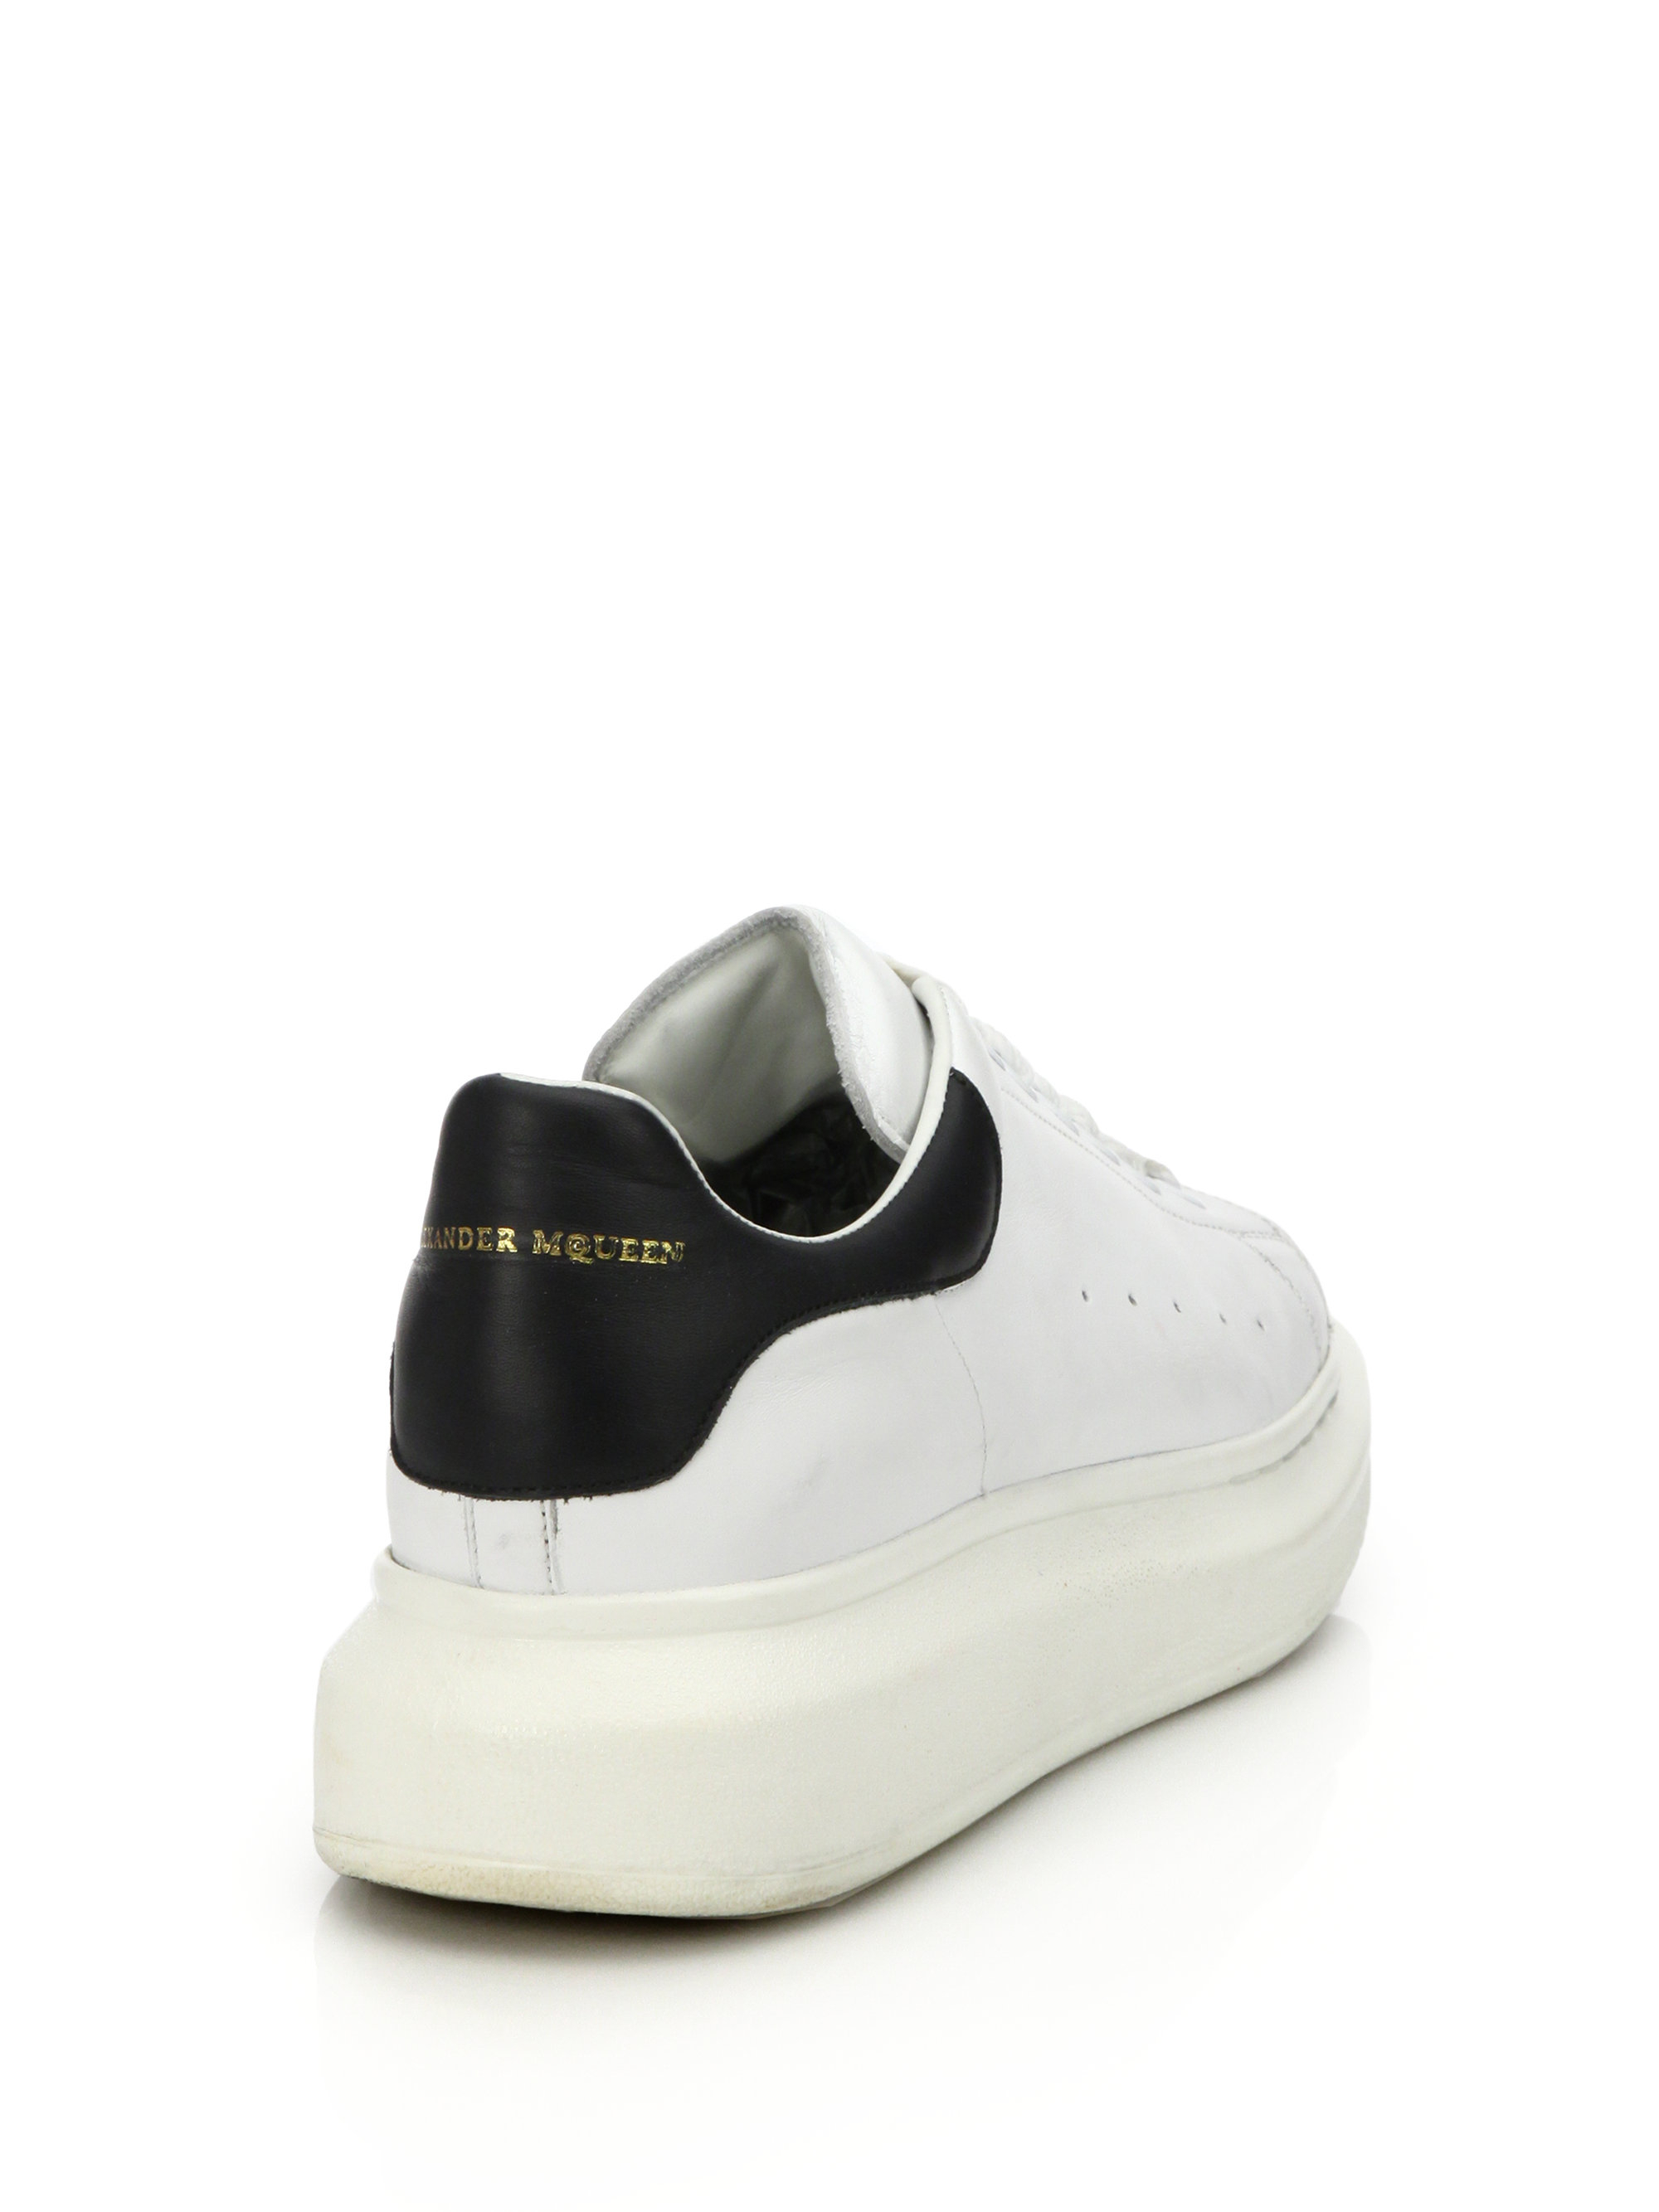 Lyst - Alexander Mcqueen Leather Sneakers in White